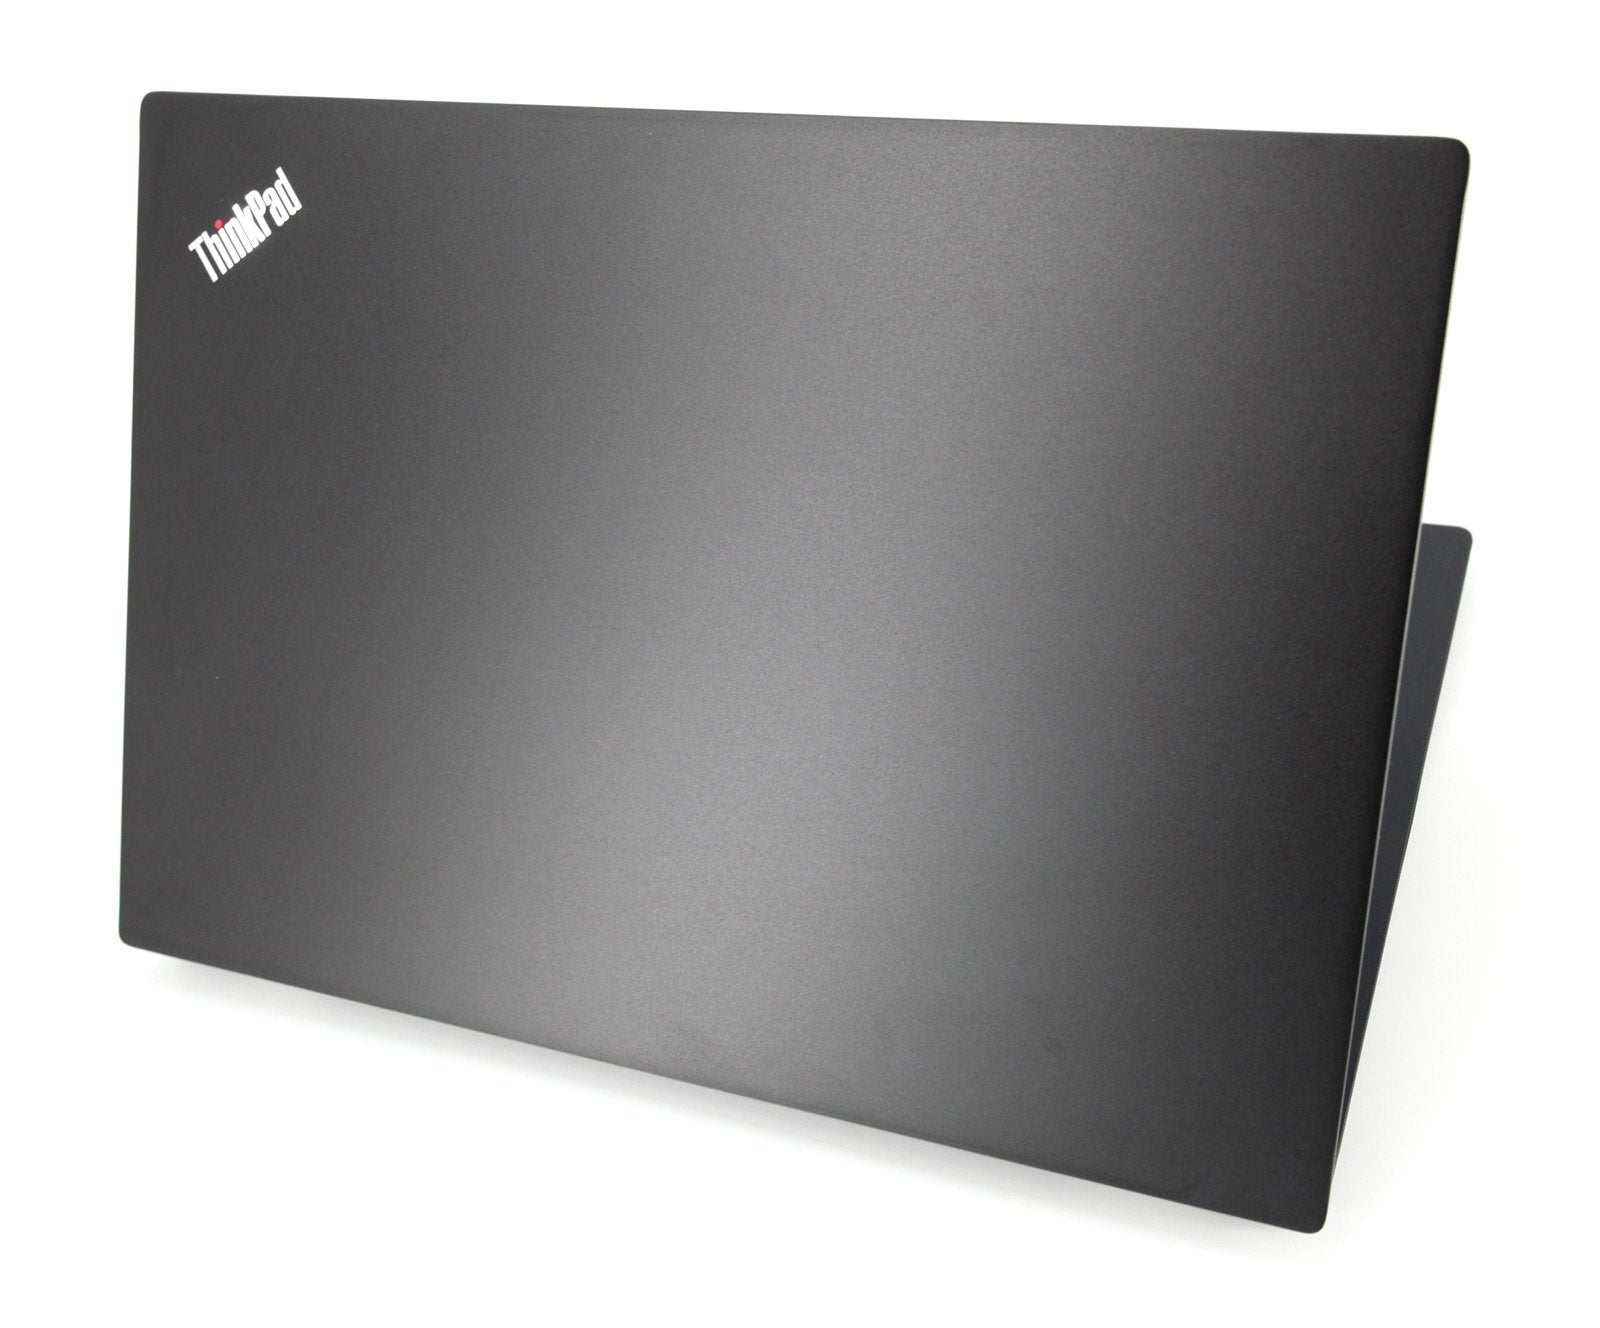 Lenovo Thinkpad L390 13.3